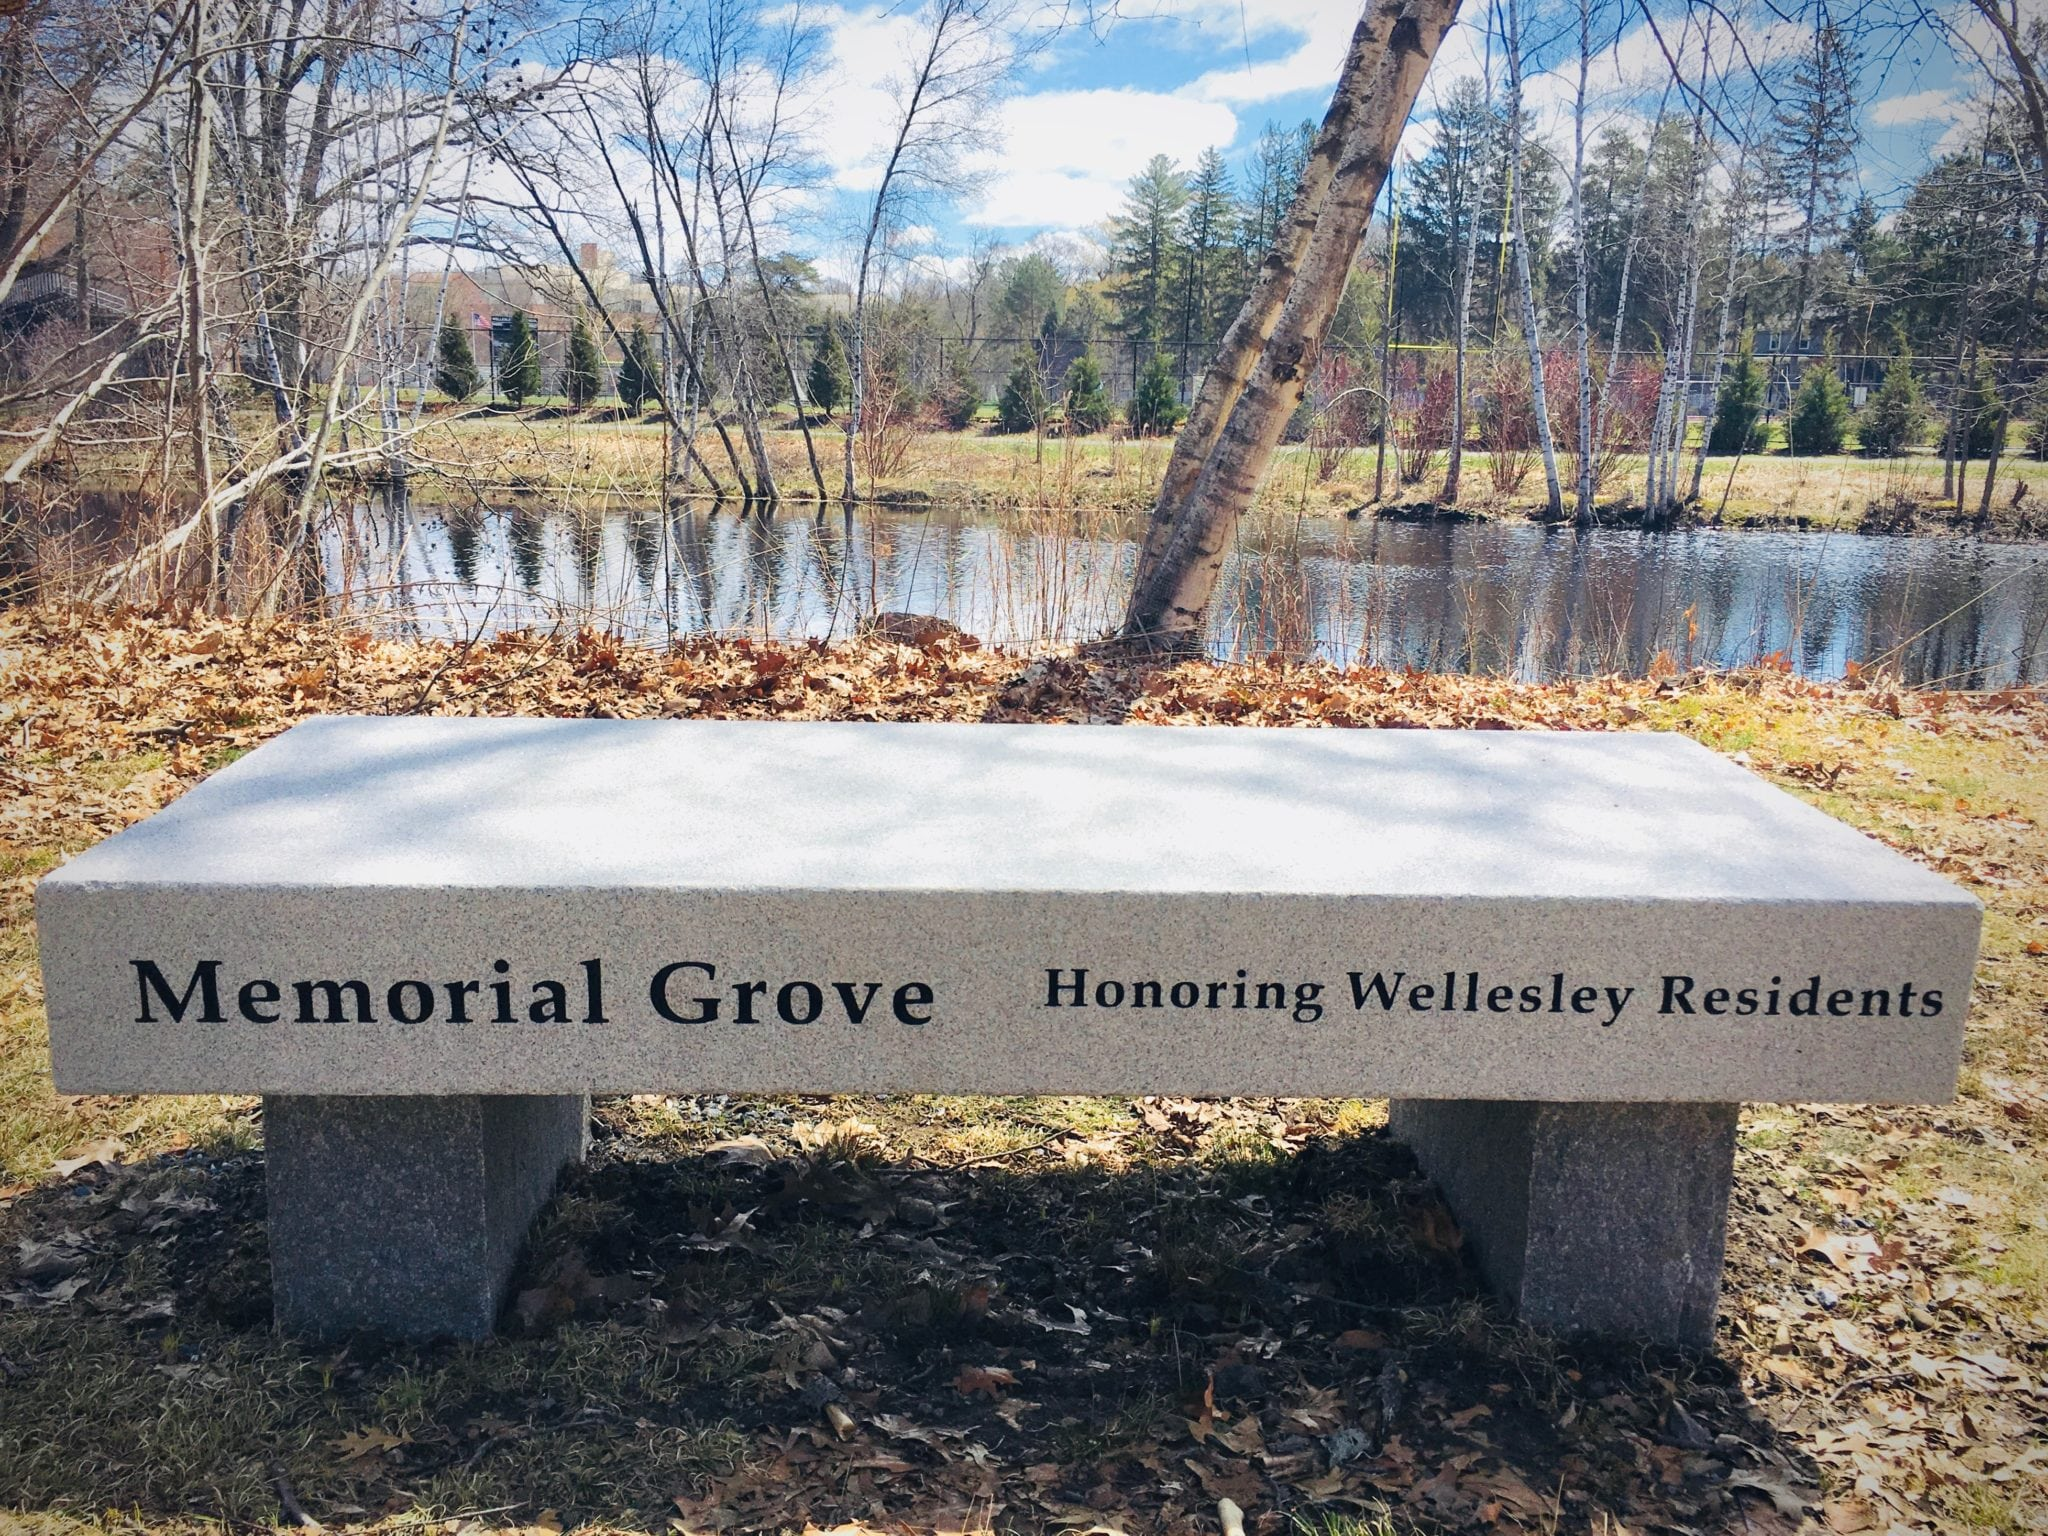 Memorial Grove, Wellesley